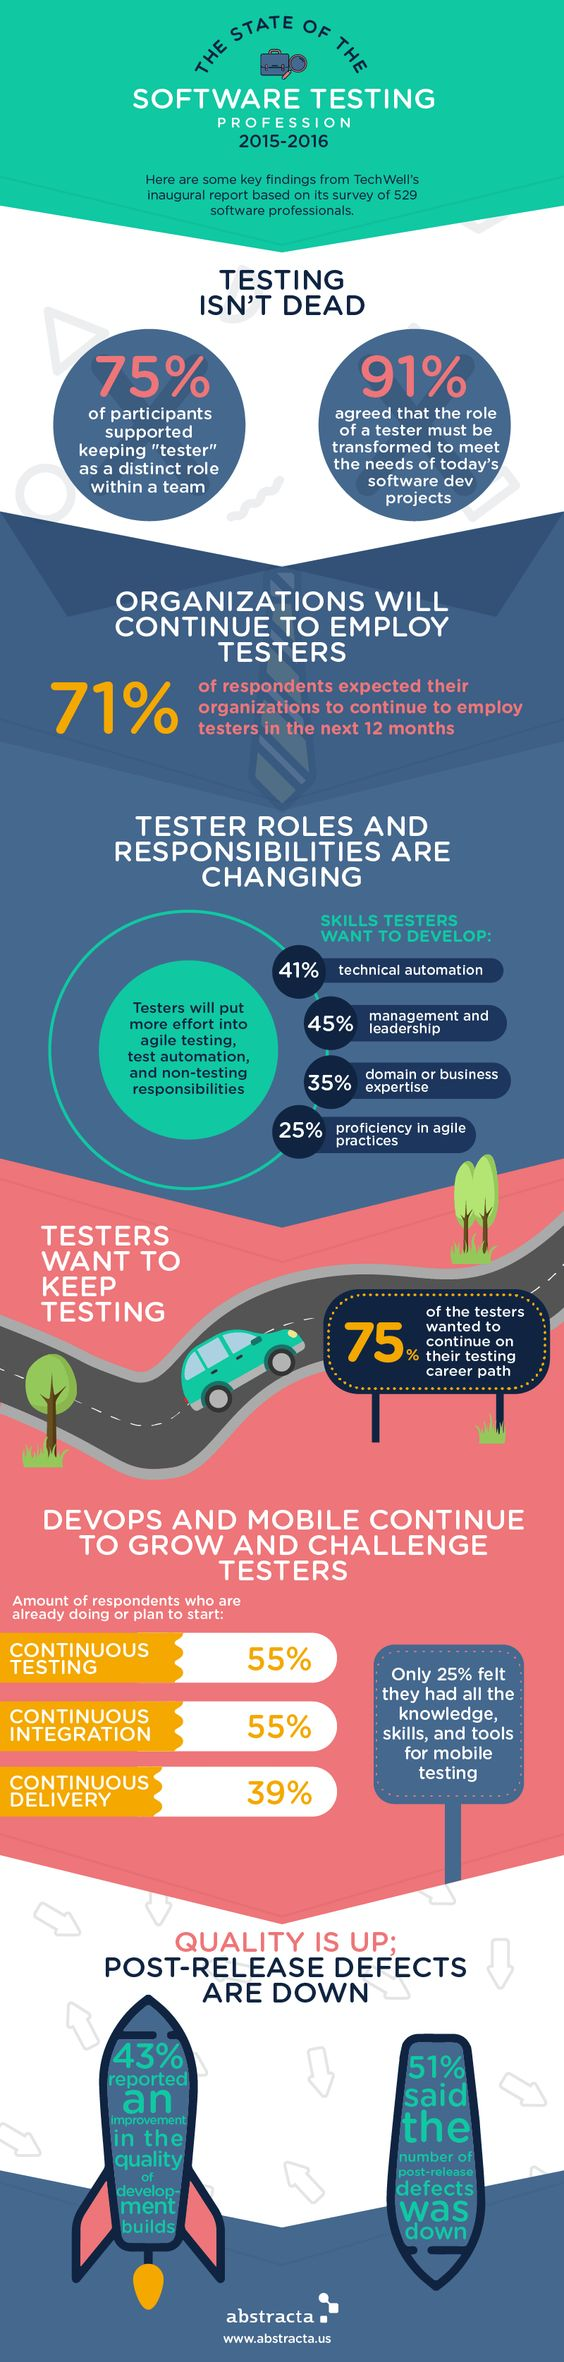 State of Testing 2015-2016 Infographic